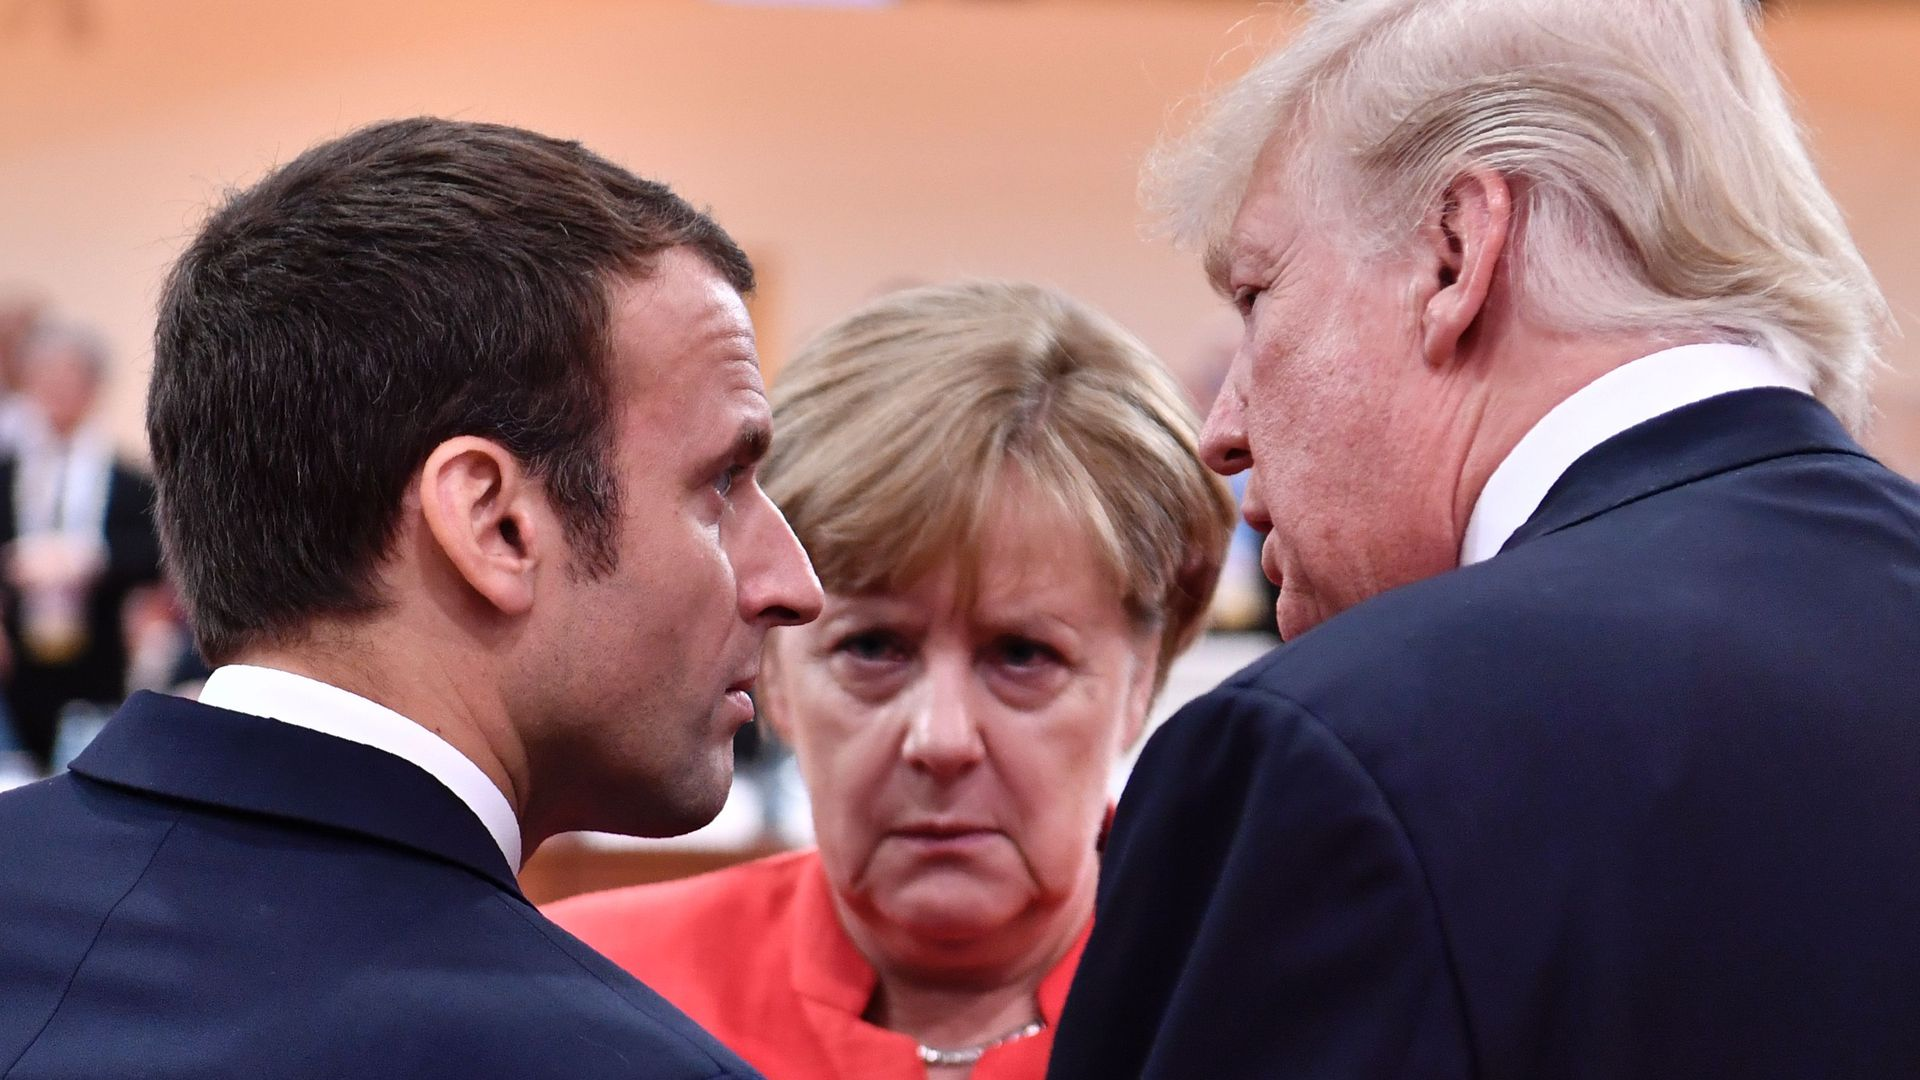 President Trump, French President Emmanuel Macron and German Chancellor Angela Merkel chat at the G20 meeting in Hamburg, Germany, on July 7, 2017